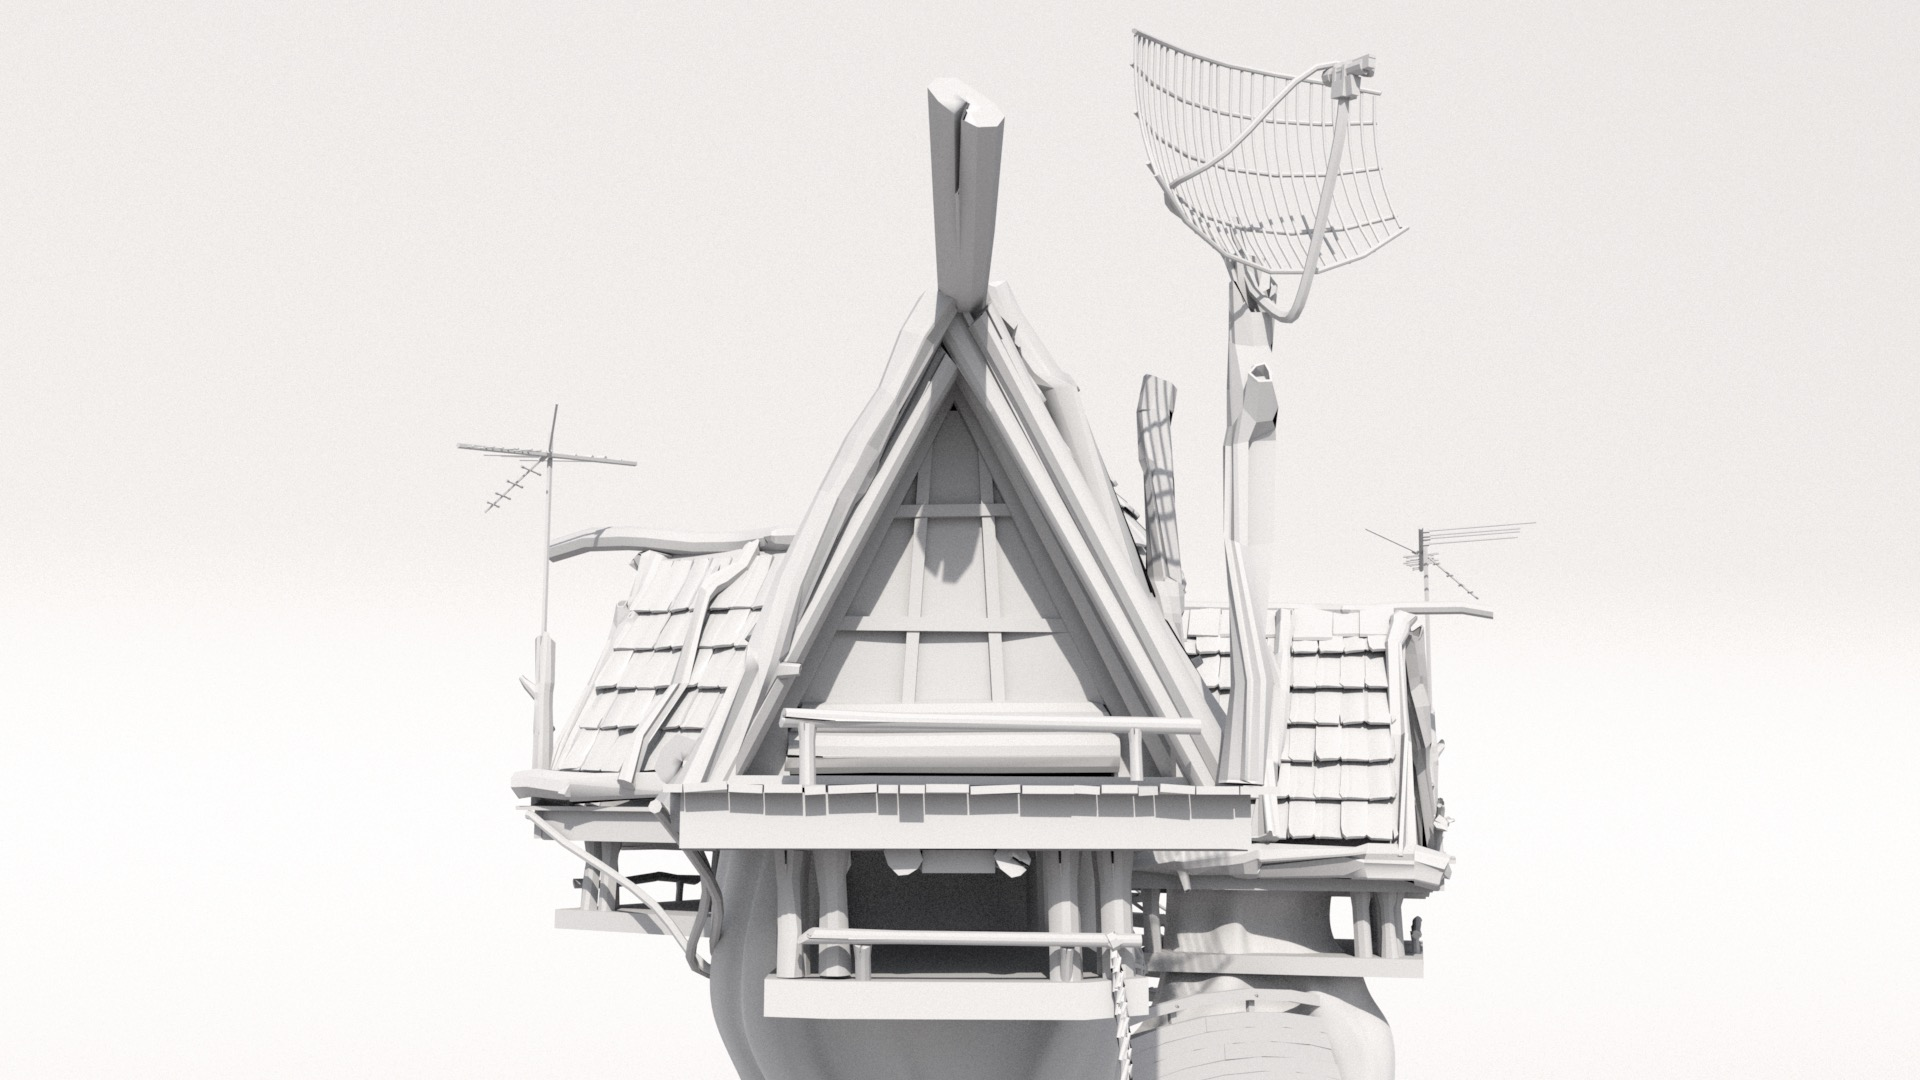 Figure 4: Candidate camera angle with a close-up focus on a specific triangular A-frame treehouse cabin.